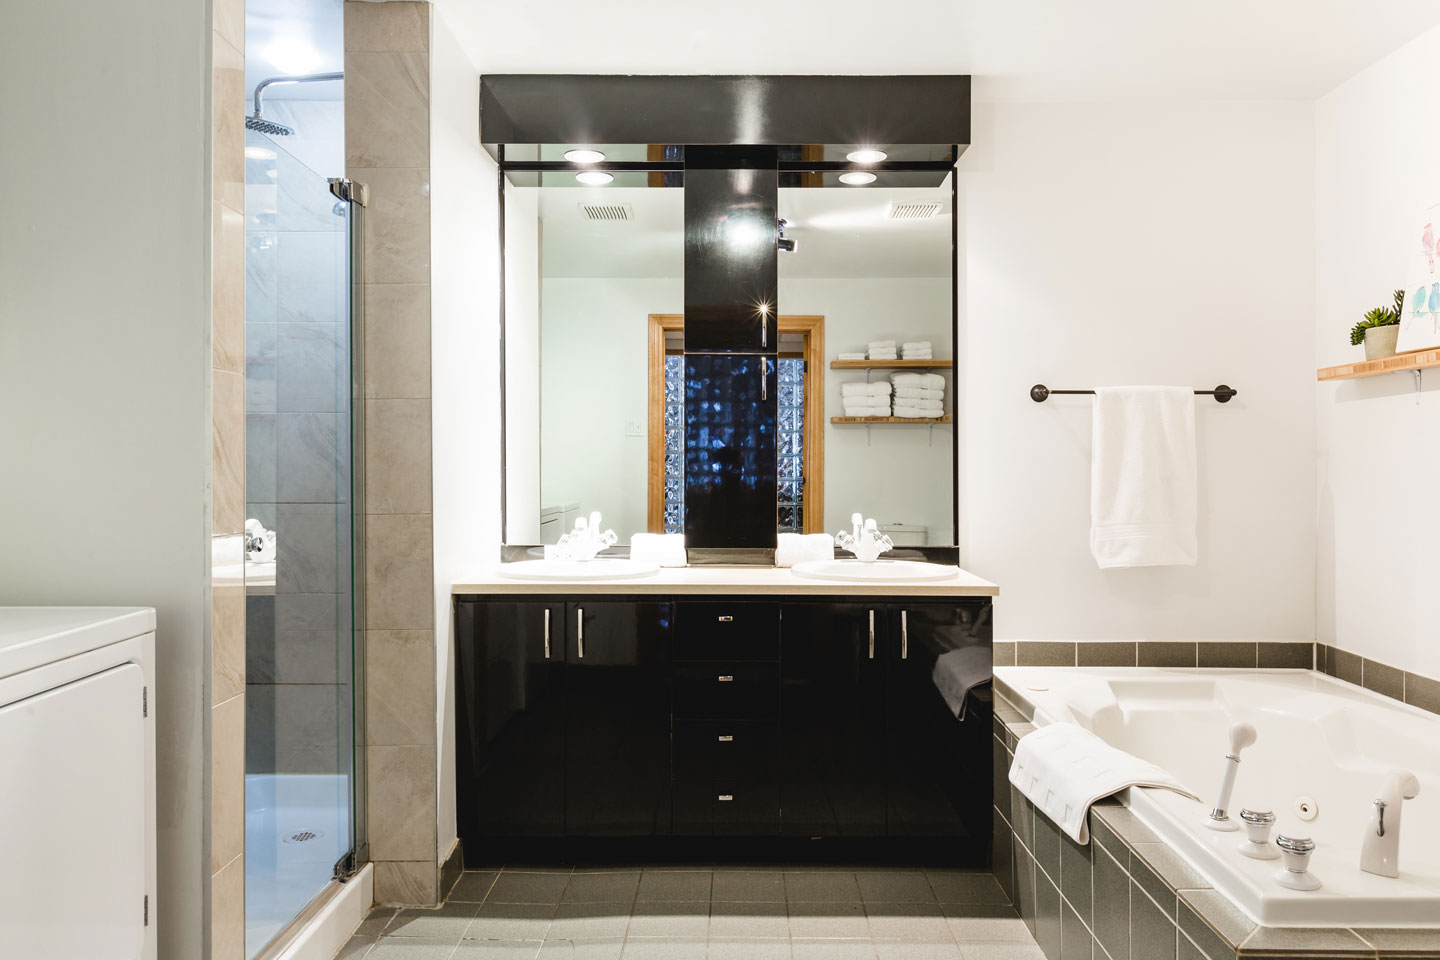 City chalet: spacious bathroom with walk-in, italian shower and 2 sinks